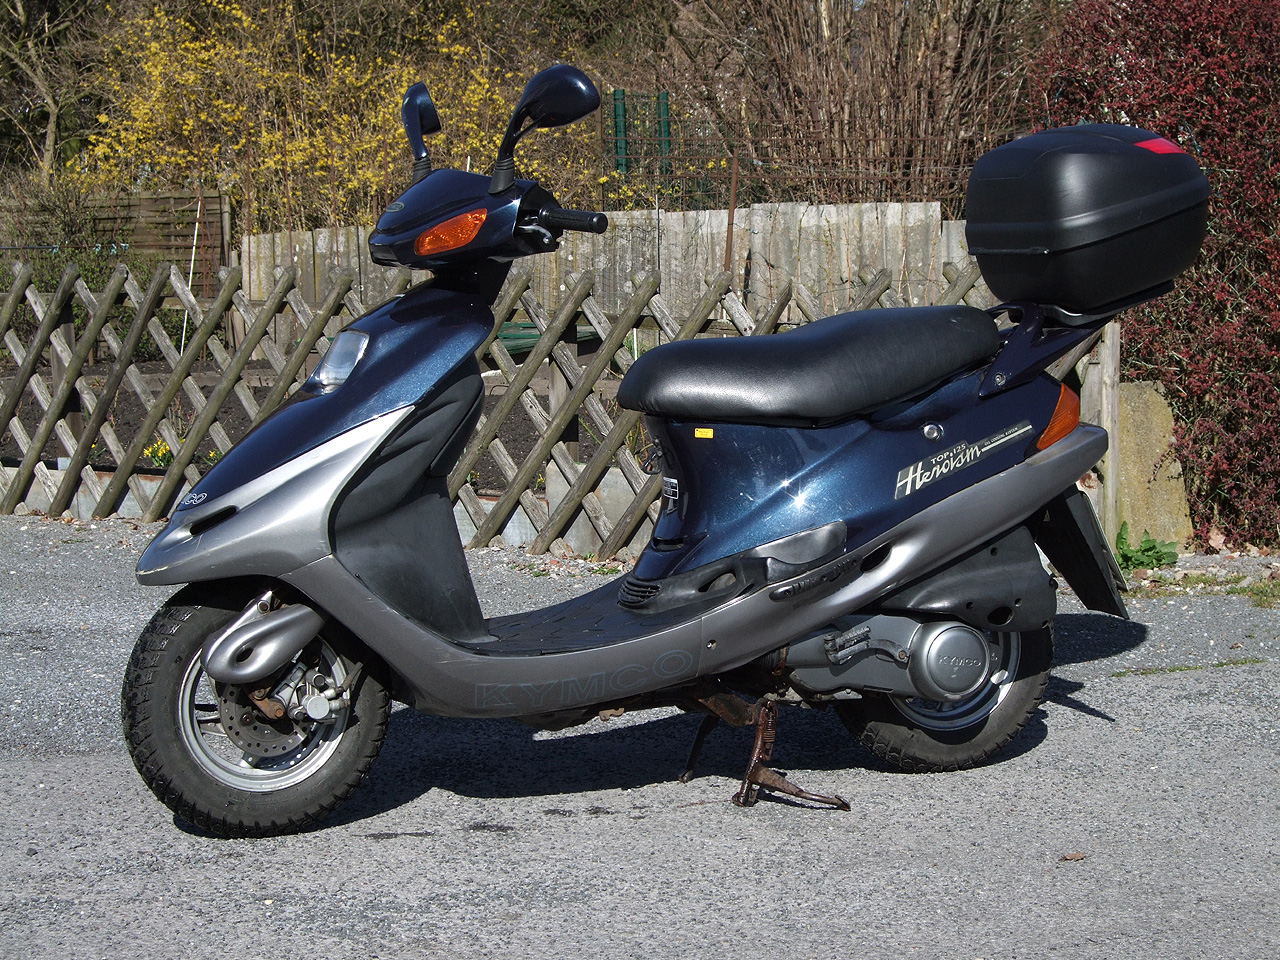 Kymco Heroism 150 1997 images #173087